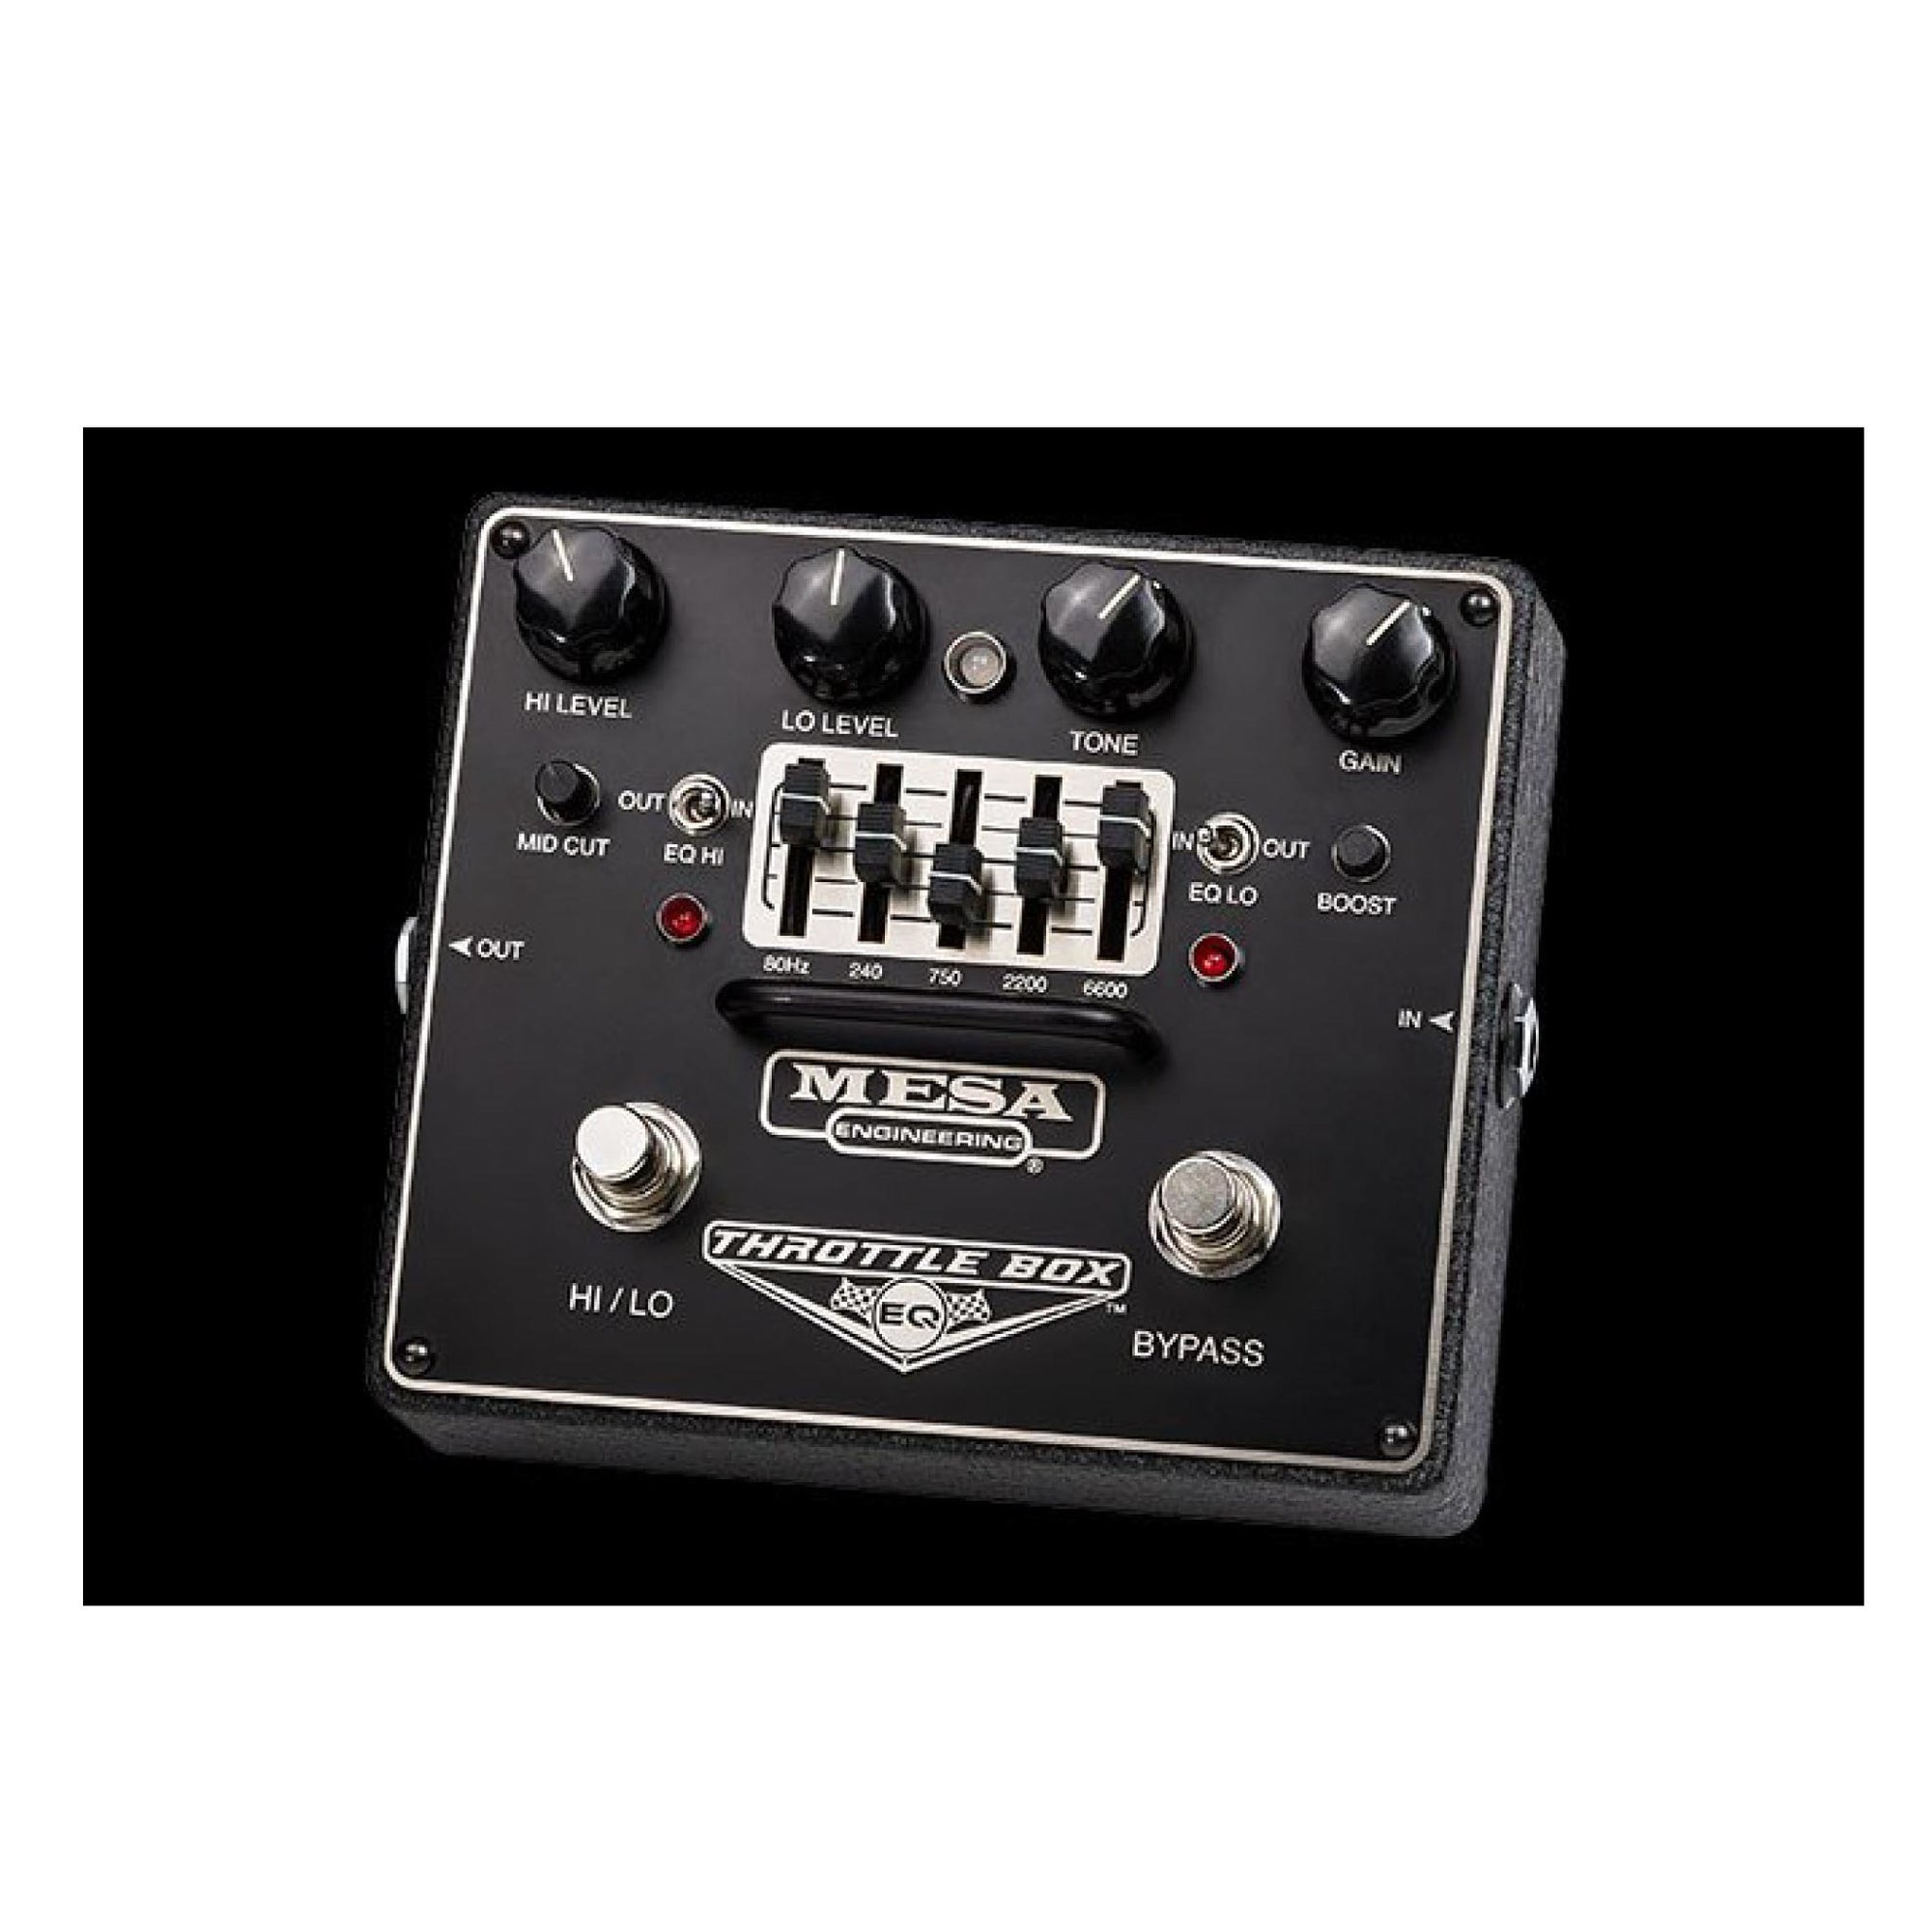 Mesa Boogie Throttle Box EQ Overdrive Pedal (Pre-Order) - Gears For Ears